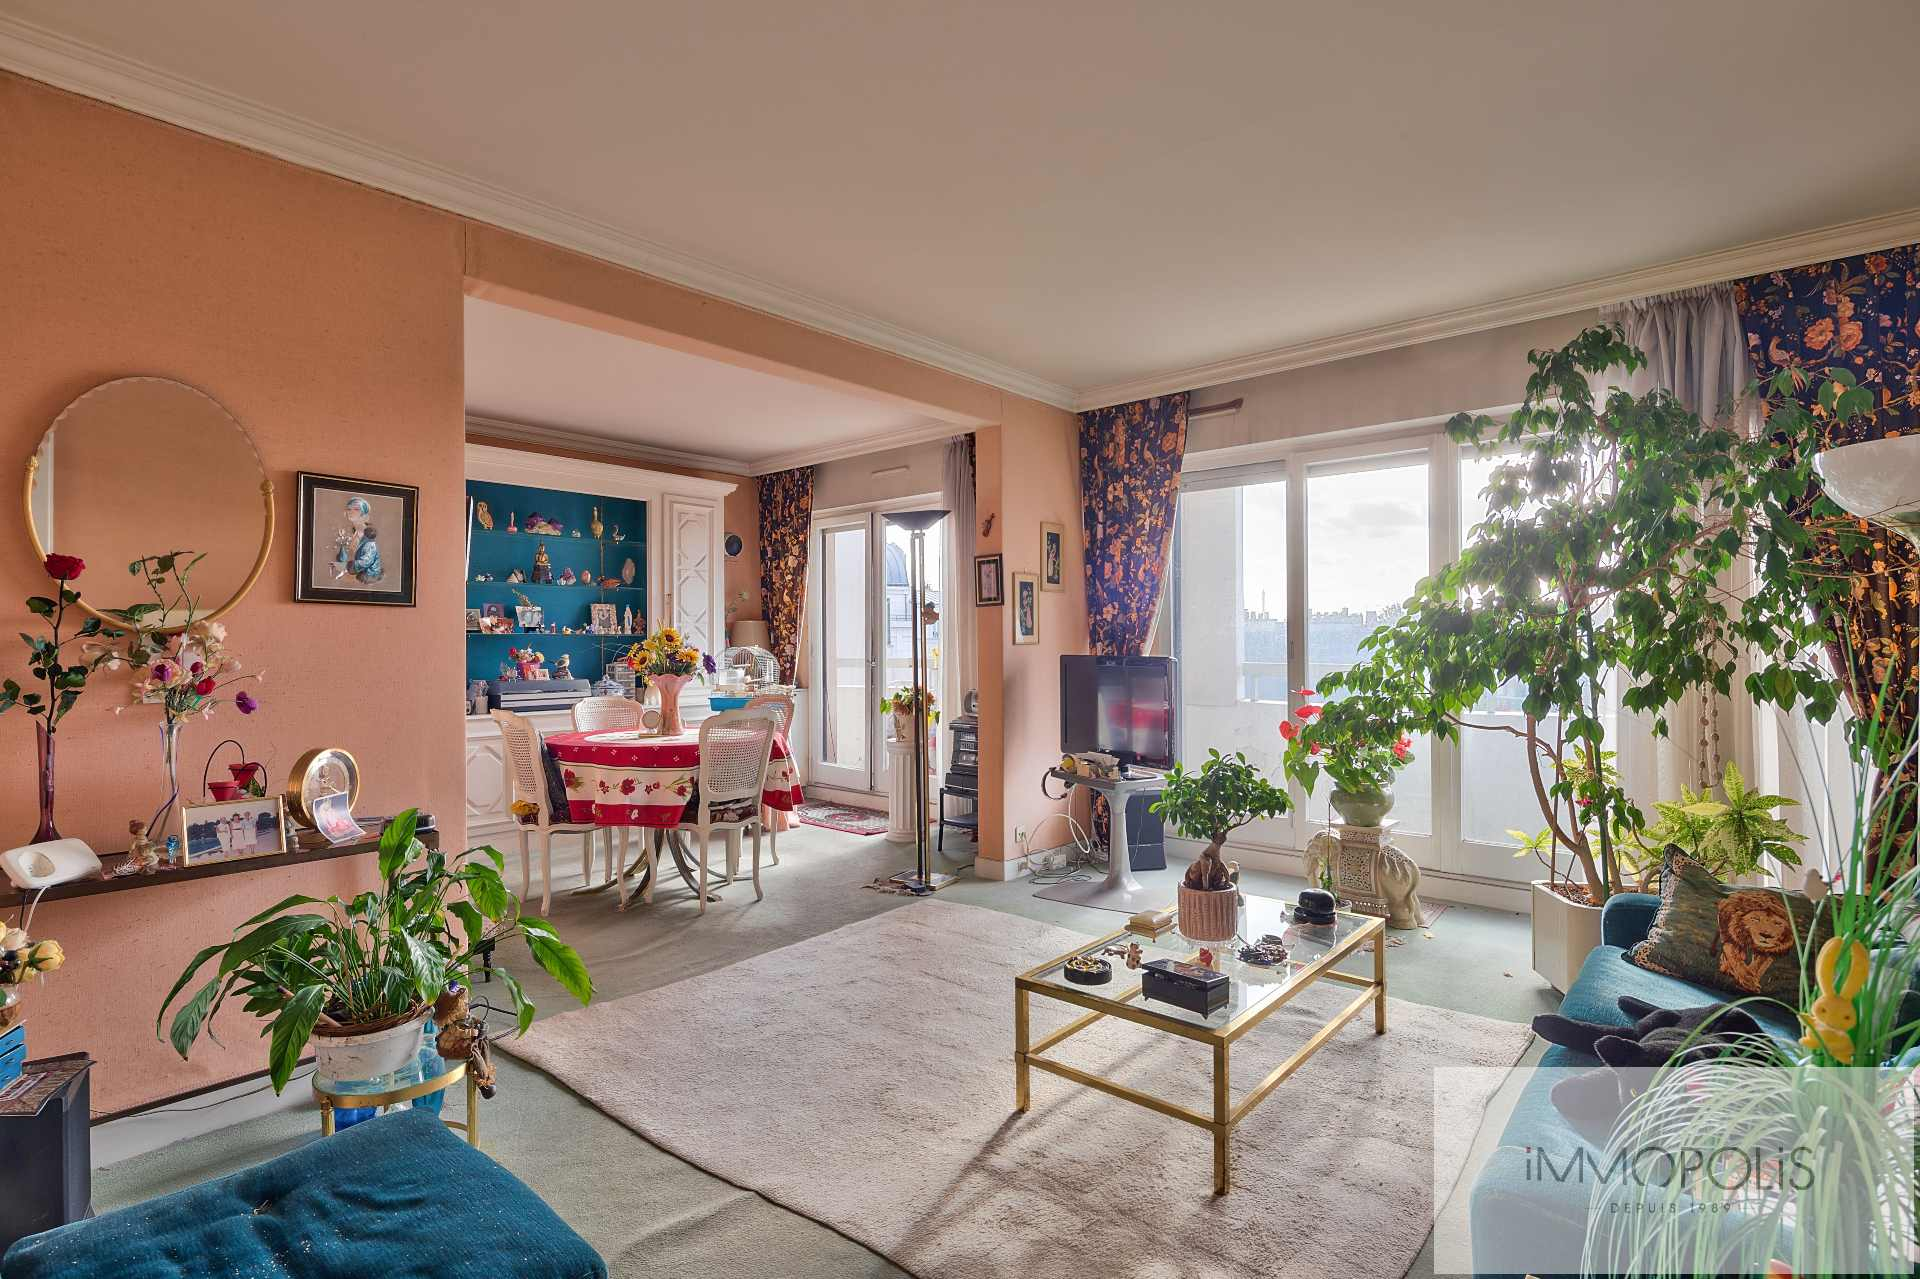 NUE-PROPERTY – 4 rooms with balcony terrace and view on gardens and the Eiffel Tower: sold occupied by usufruitière 90 years 1